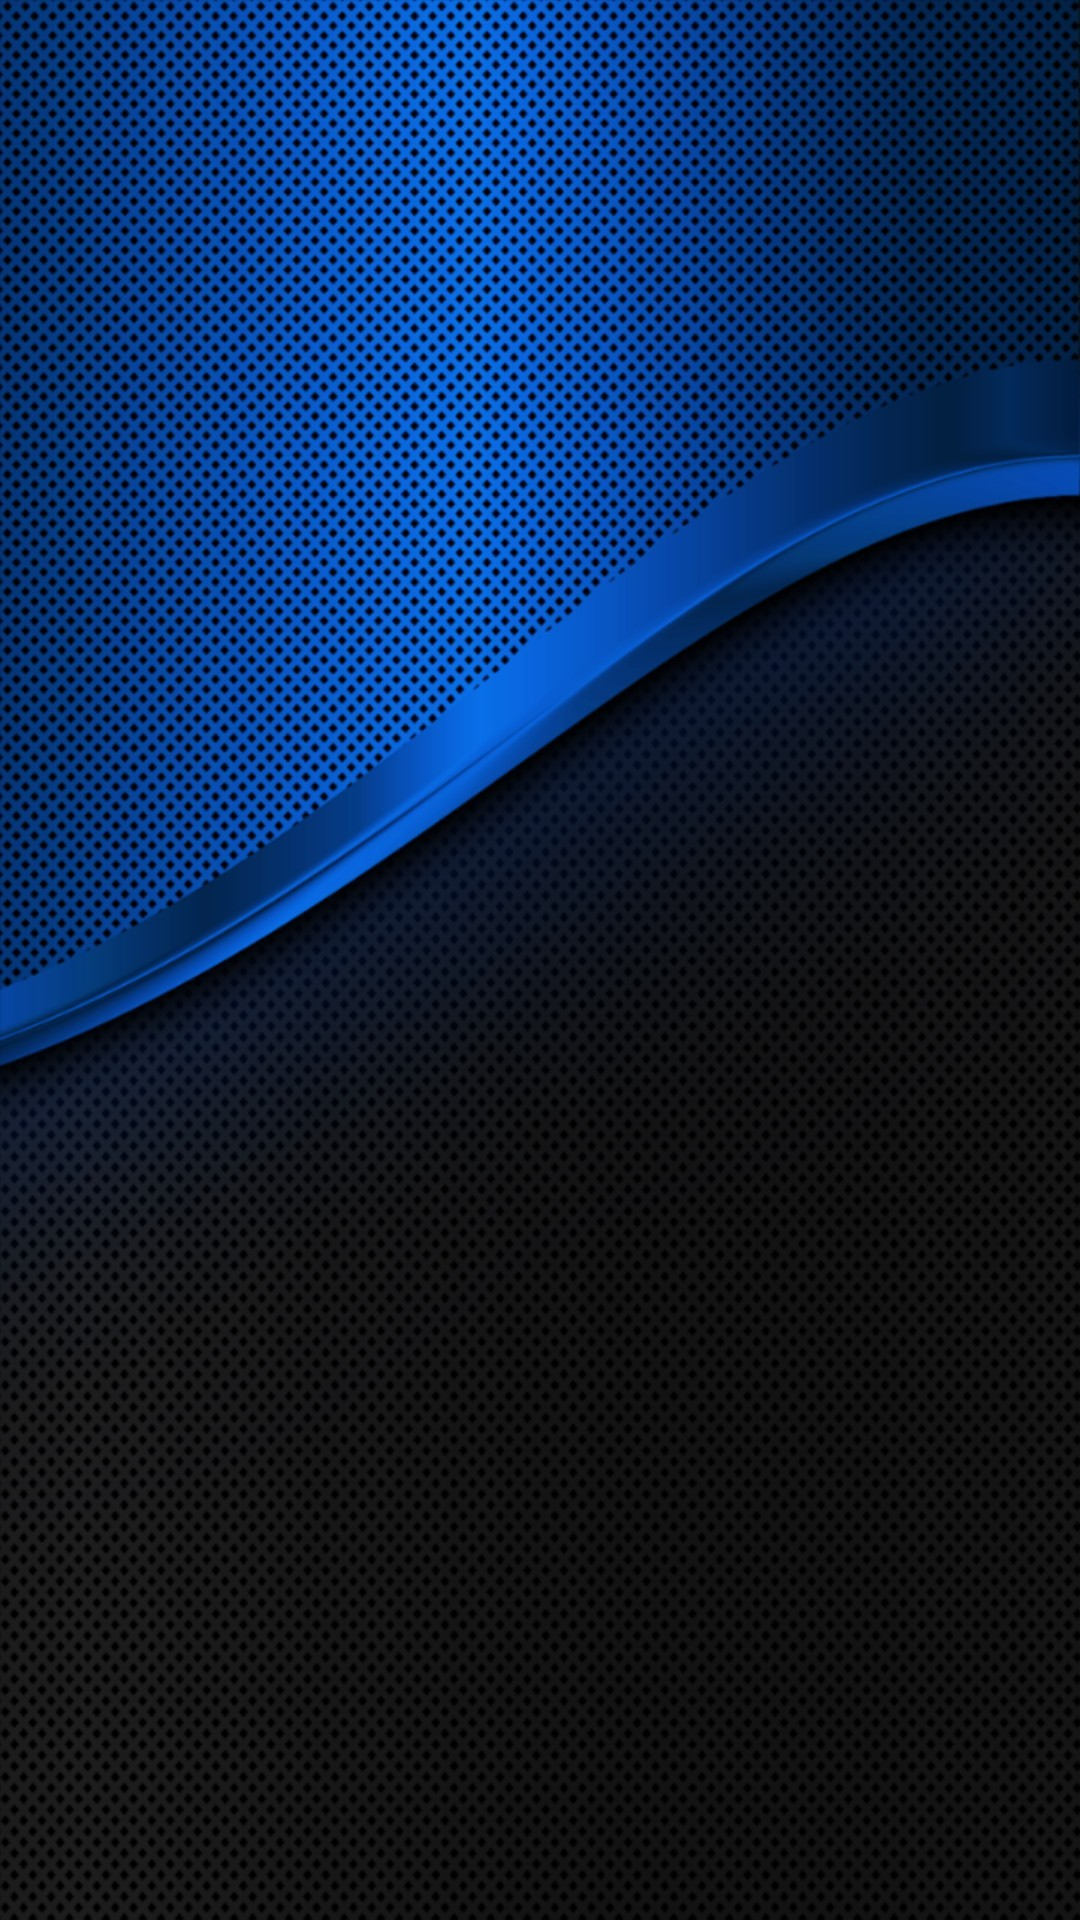 Android Blue Wallpaper 1